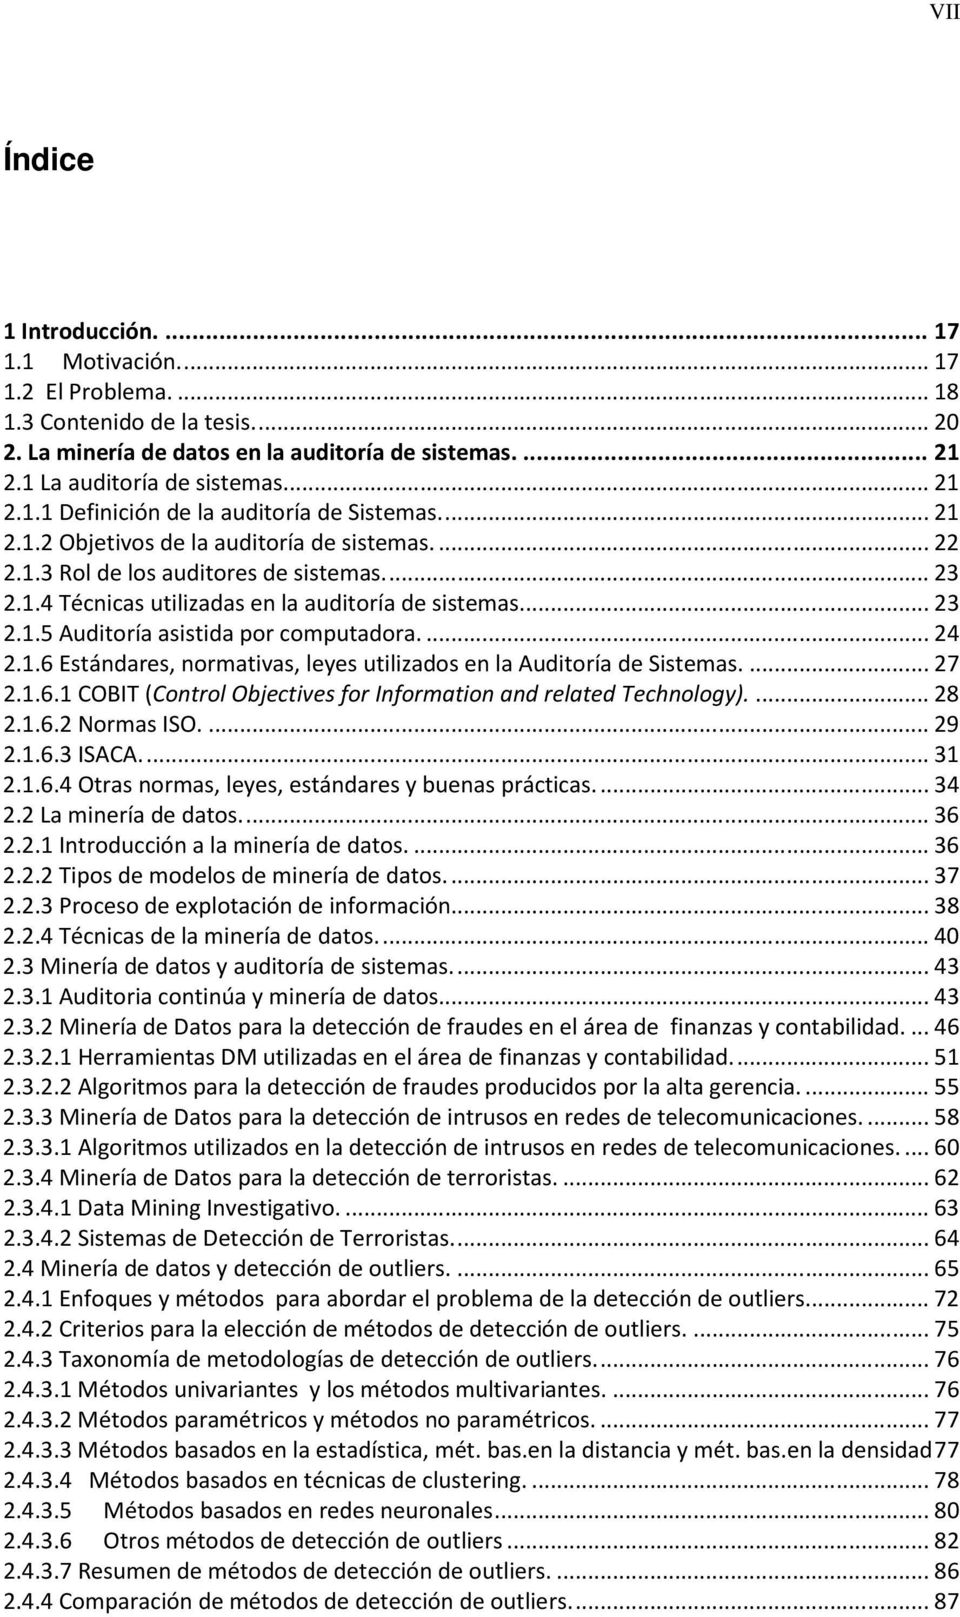 ... 23 2.1.5 Auditoría asistida por computadora.... 24 2.1.6 Estándares, normativas, leyes utilizados en la Auditoría de Sistemas.... 27 2.1.6.1 COBIT (Control Objectives for Information and related Technology).